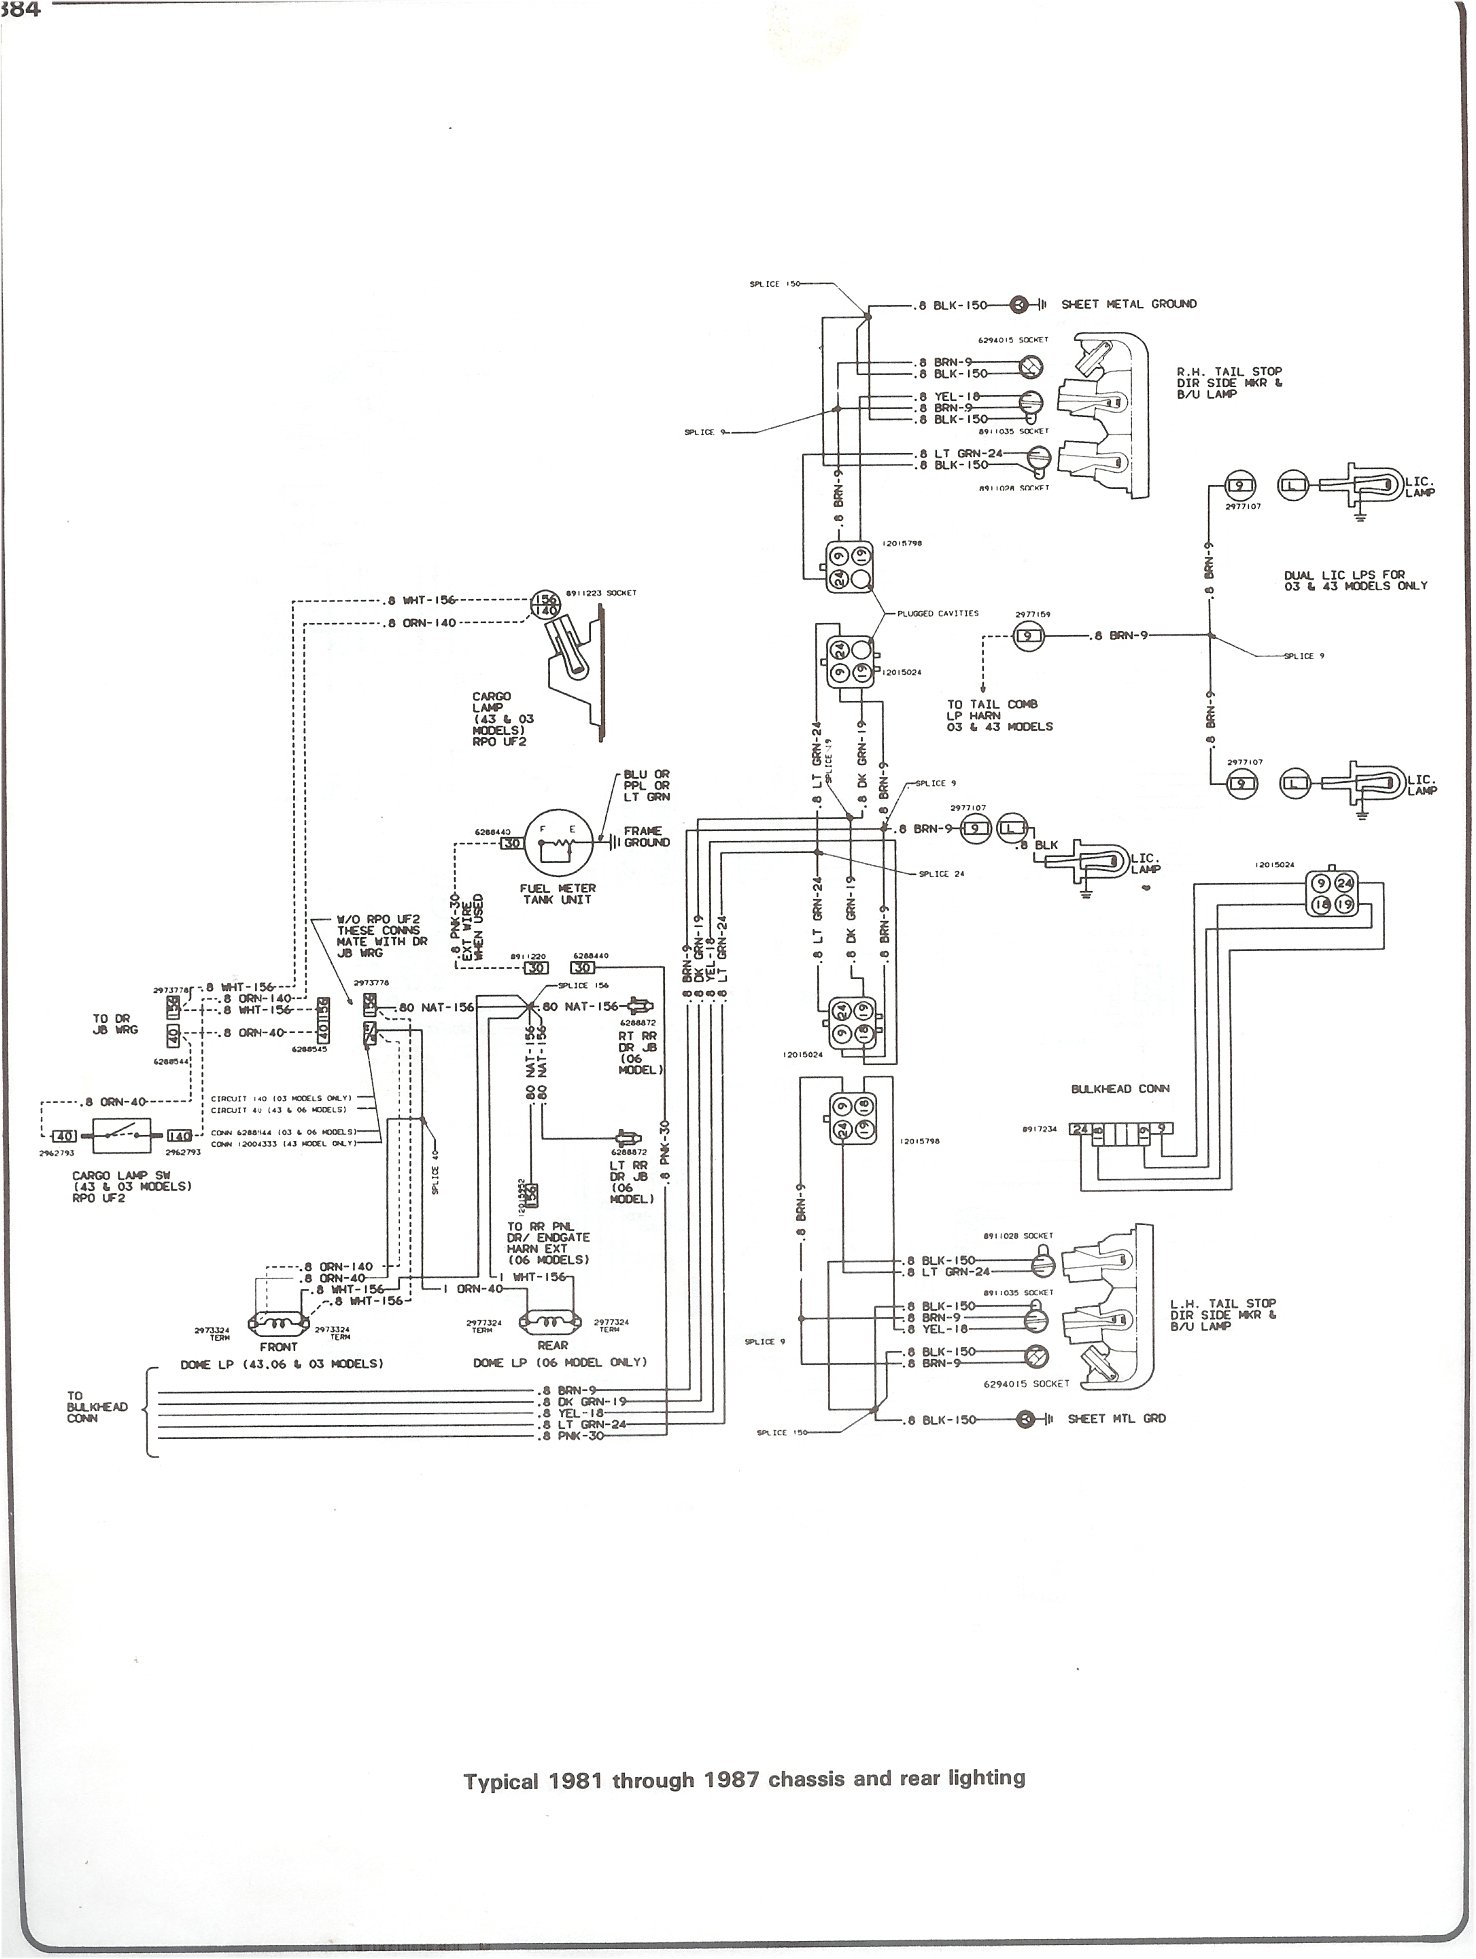 81 87_chass_rr_light complete 73 87 wiring diagrams chevy wiring schematics at mifinder.co